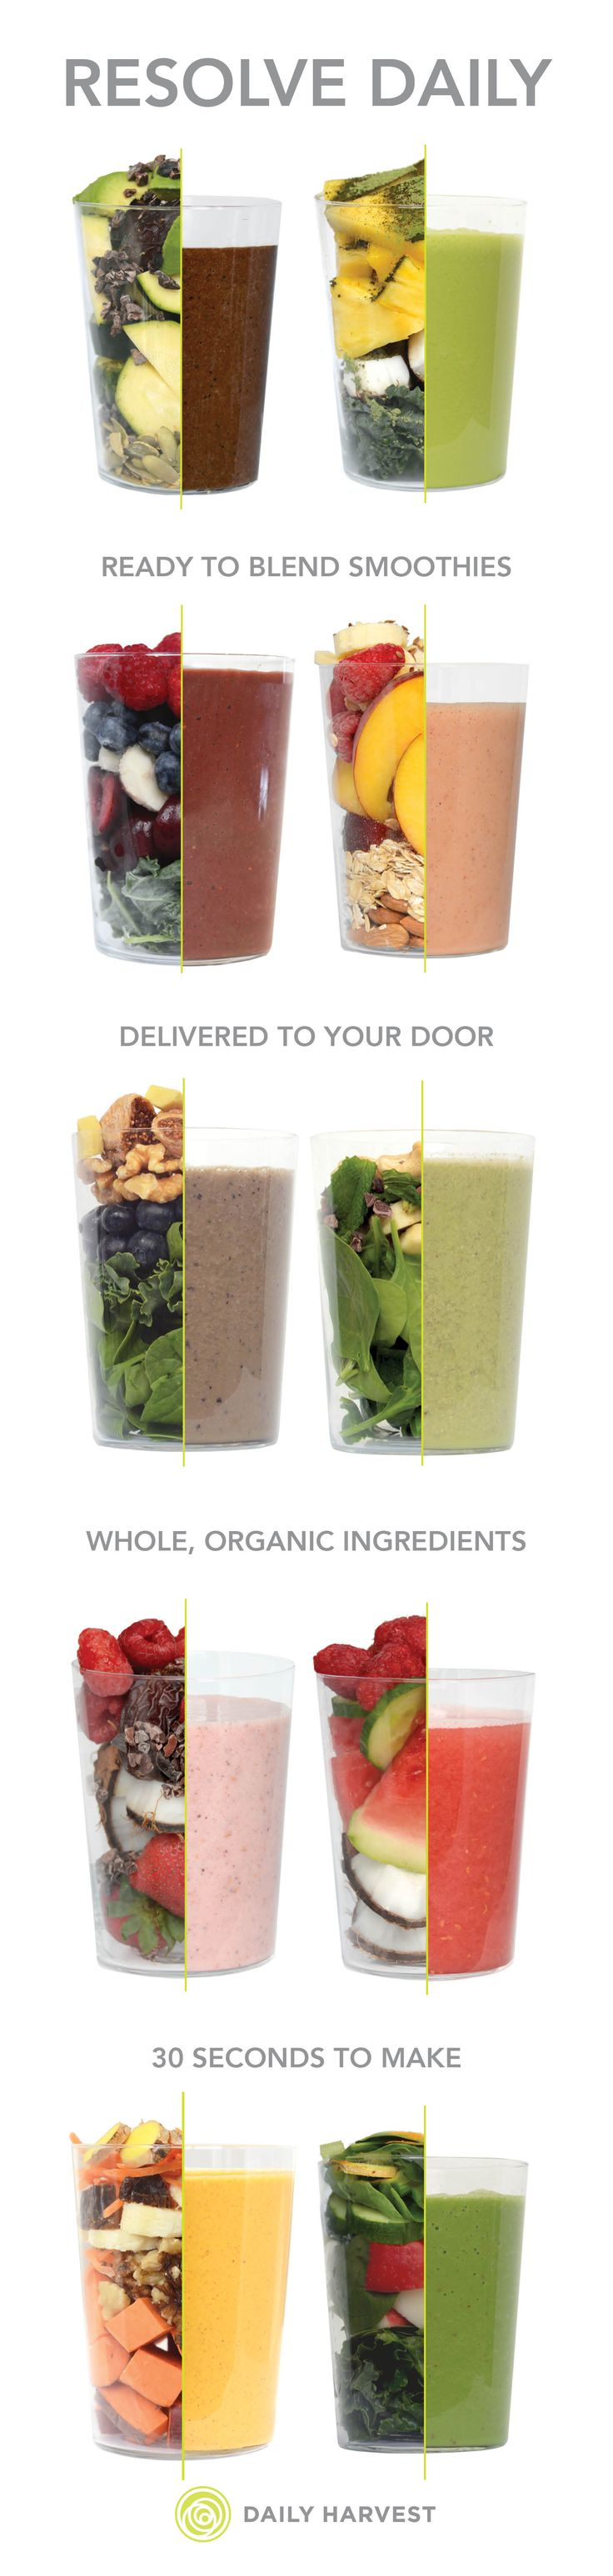 Eat better in 2016 with 14 ready-to-blend smoothies delivered frozen to your door. Full of whole, organic ingredients that only take 30 seconds to blend for a fresh, nutrient-dense smoothie any time.